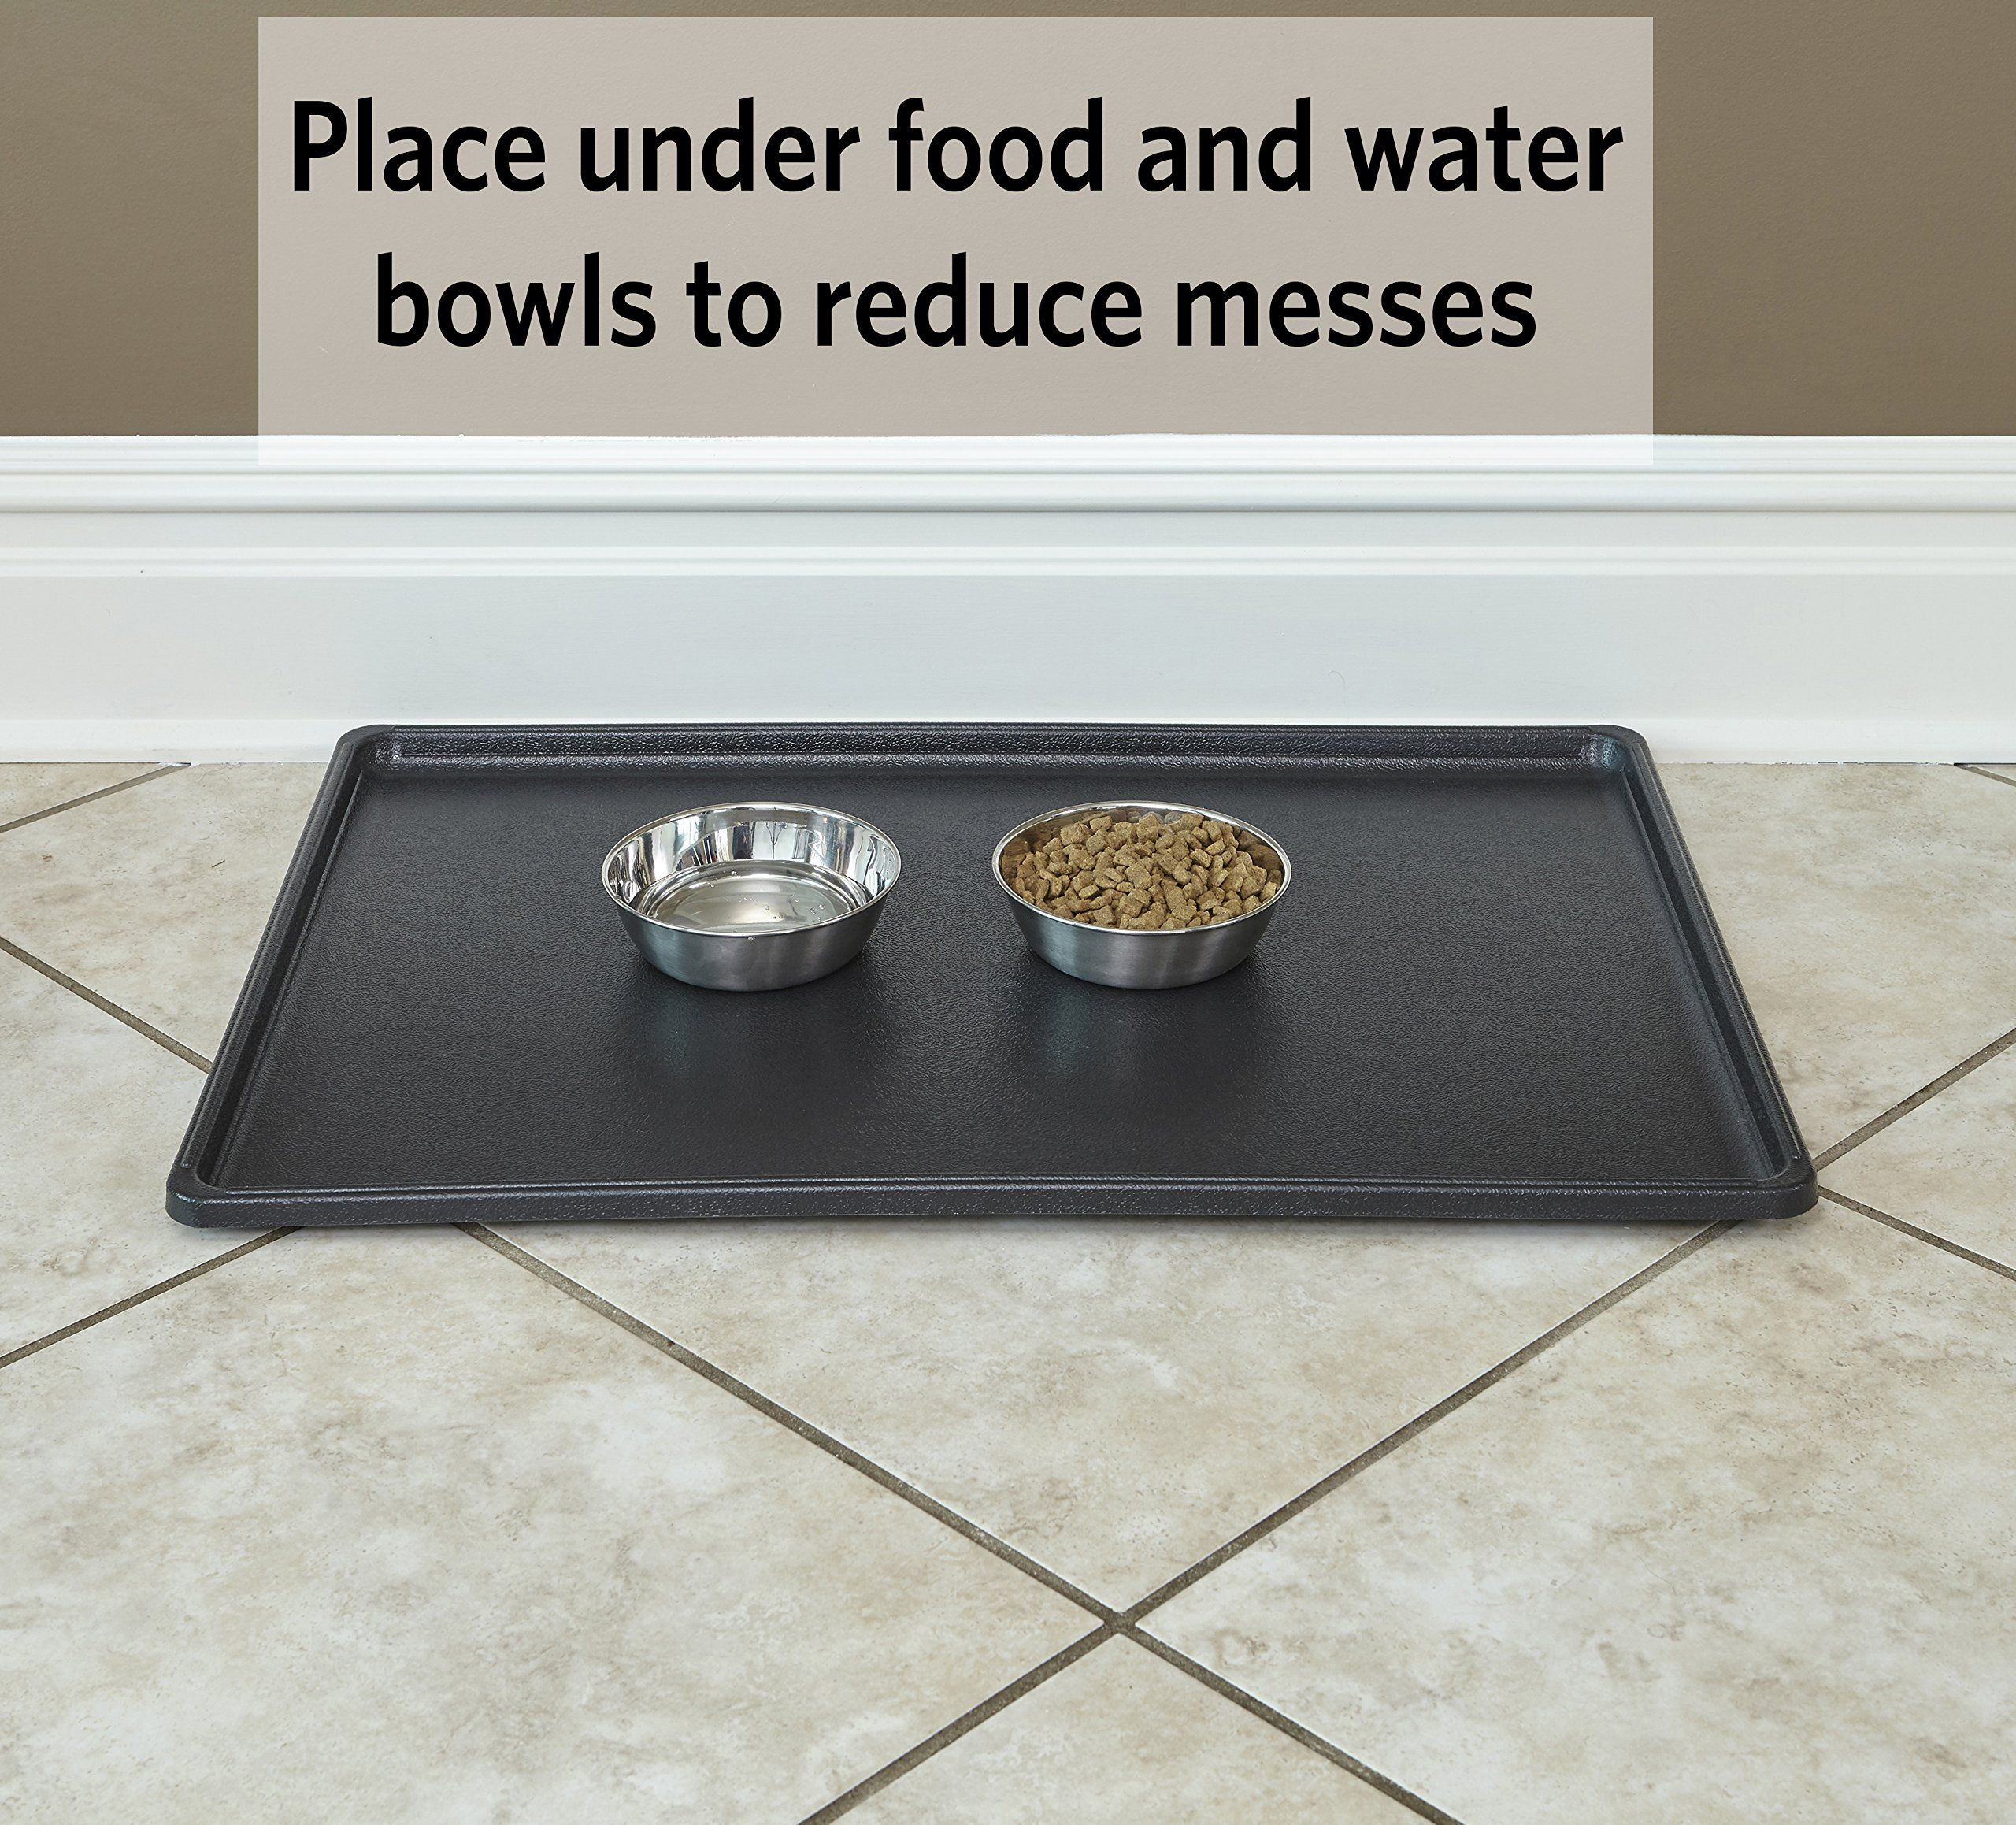 Midwest Homes For Pets Dog Crate Replacement Pans Pets Homes Midwest Dog Midwest Dog Crates Dog Crate